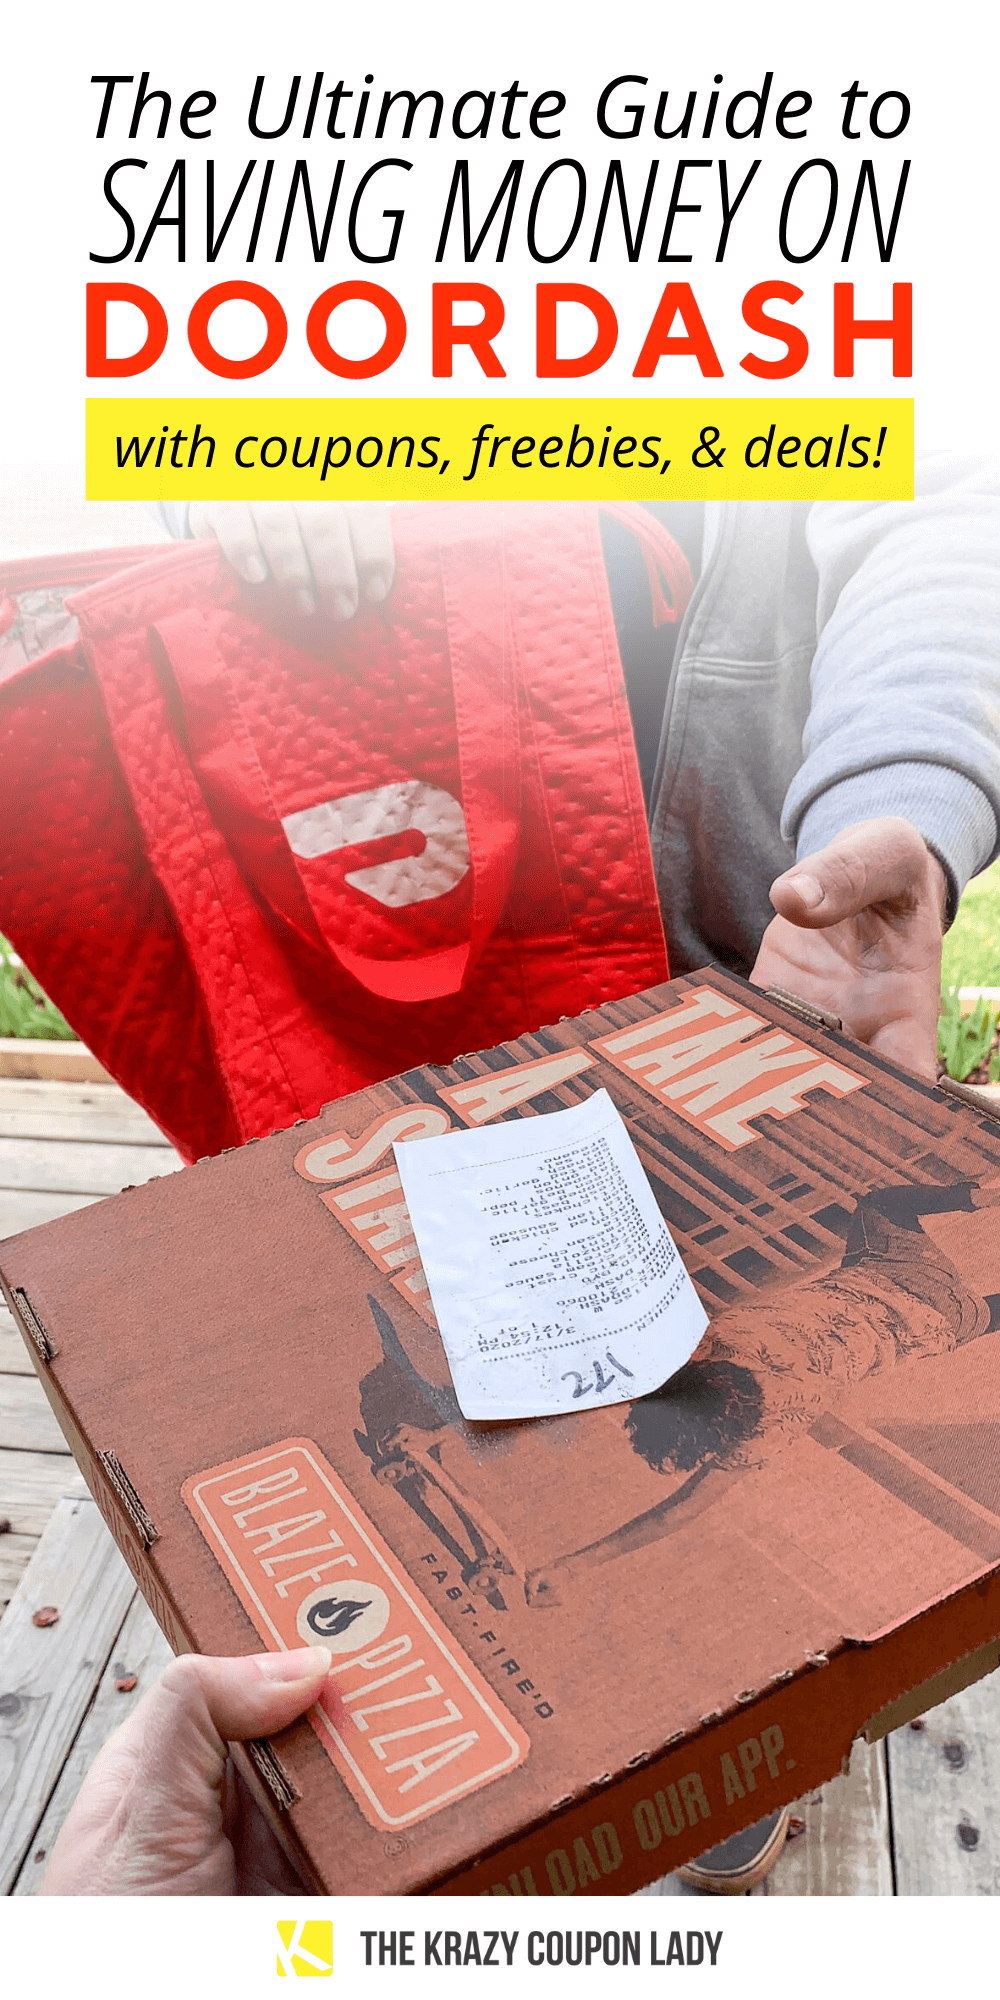 Your Ultimate Guide to DoorDash Coupons & How to Use Them